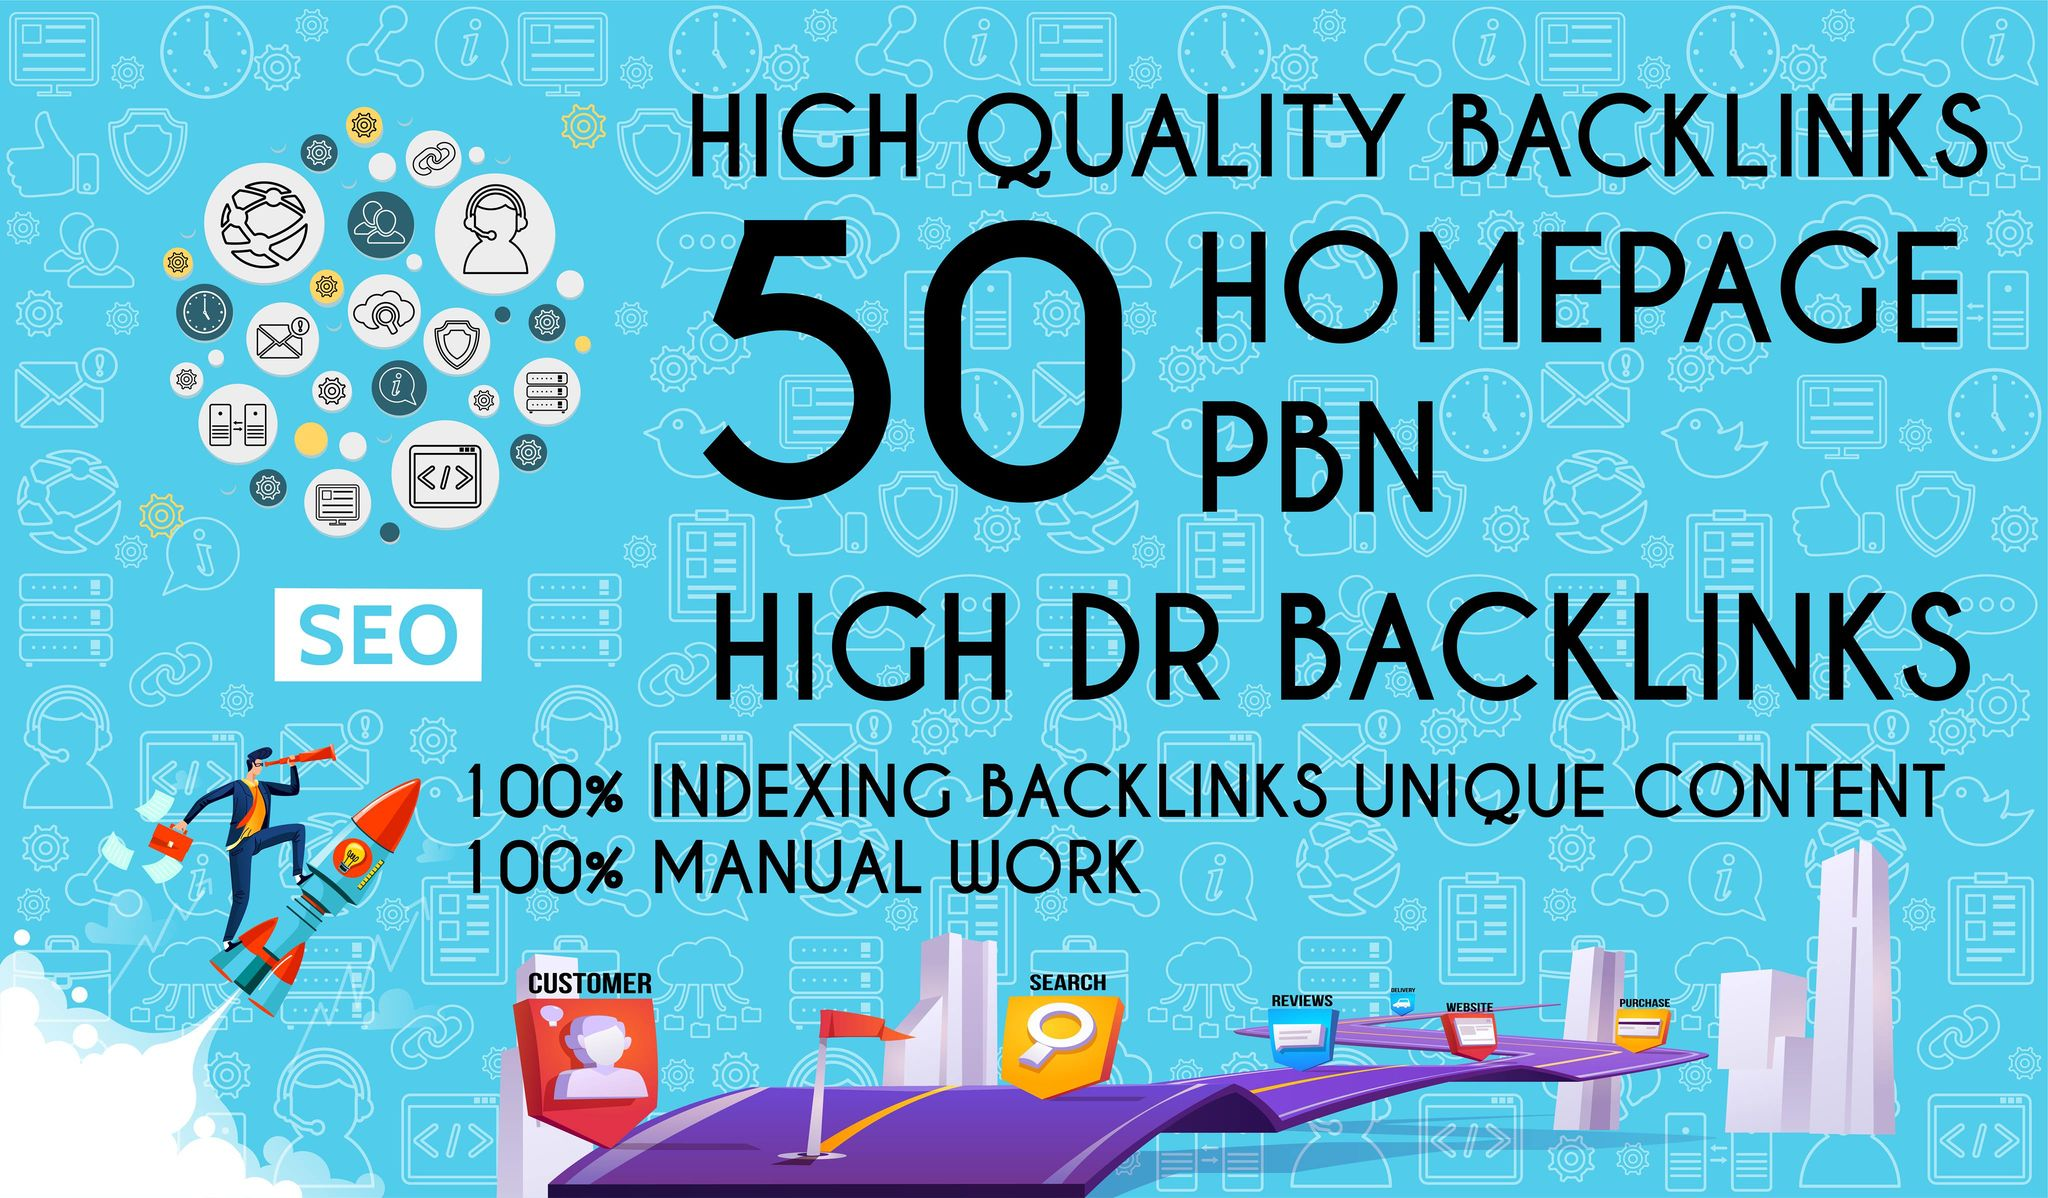 Get 50 Dofollow Homepage PBN Backlinks On High DA & DR